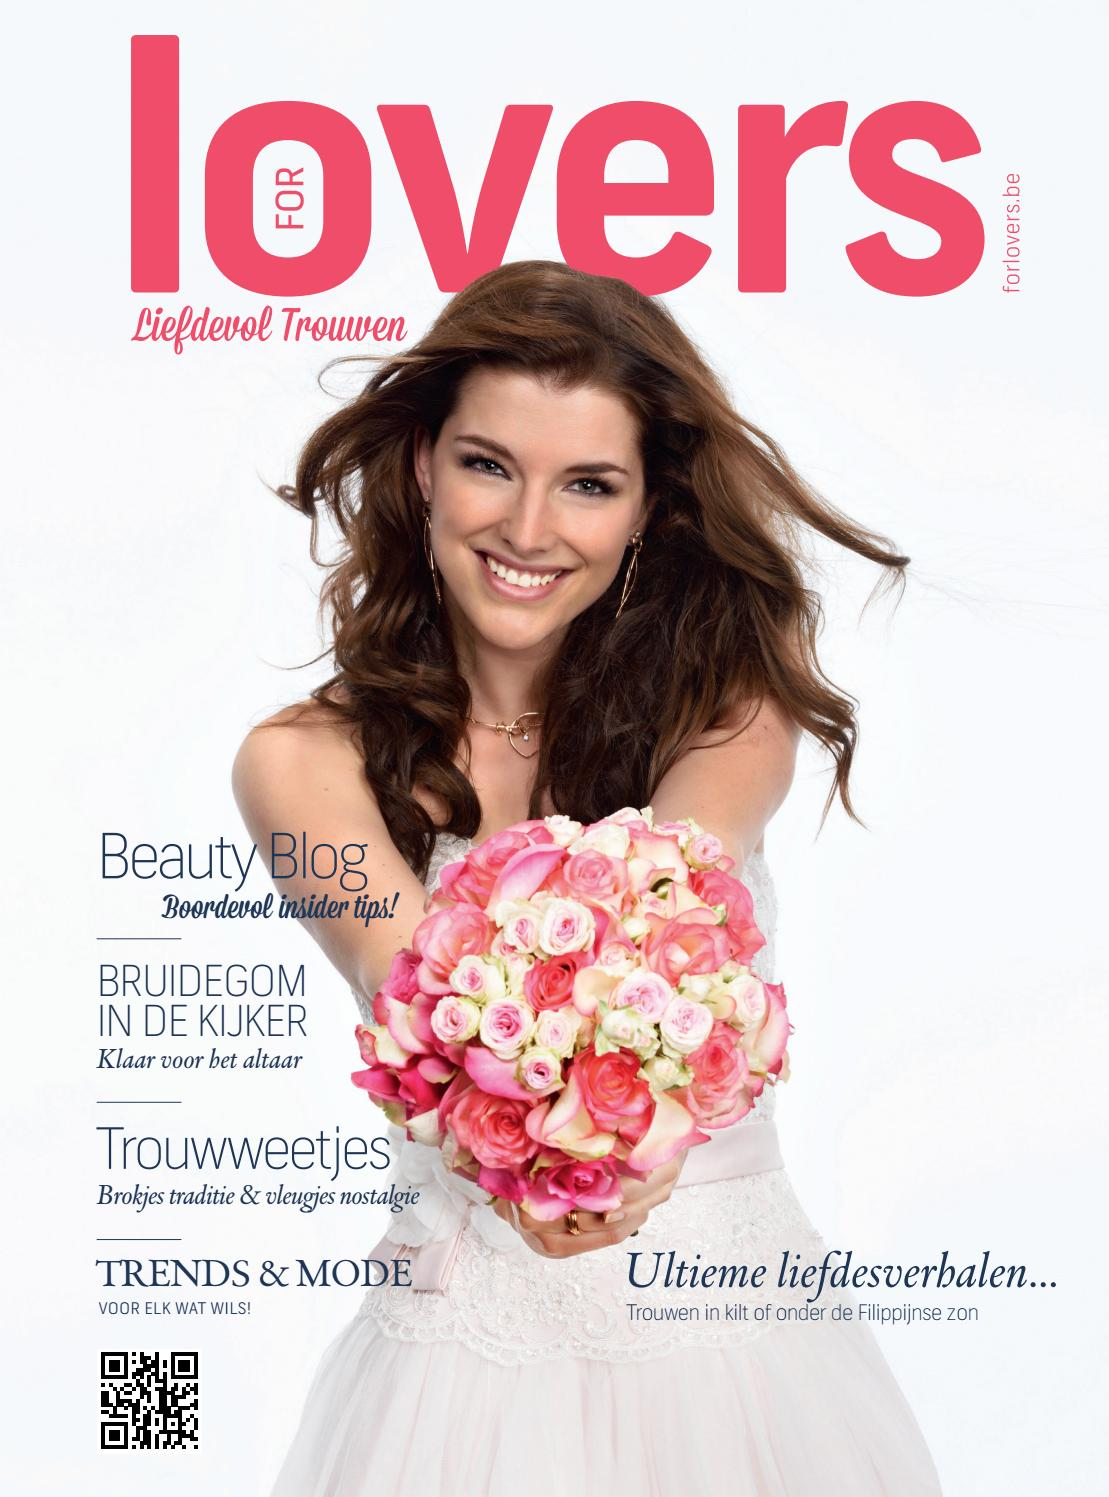 For lovers, liefdevol trouwen januari 2016 by for lovers   issuu